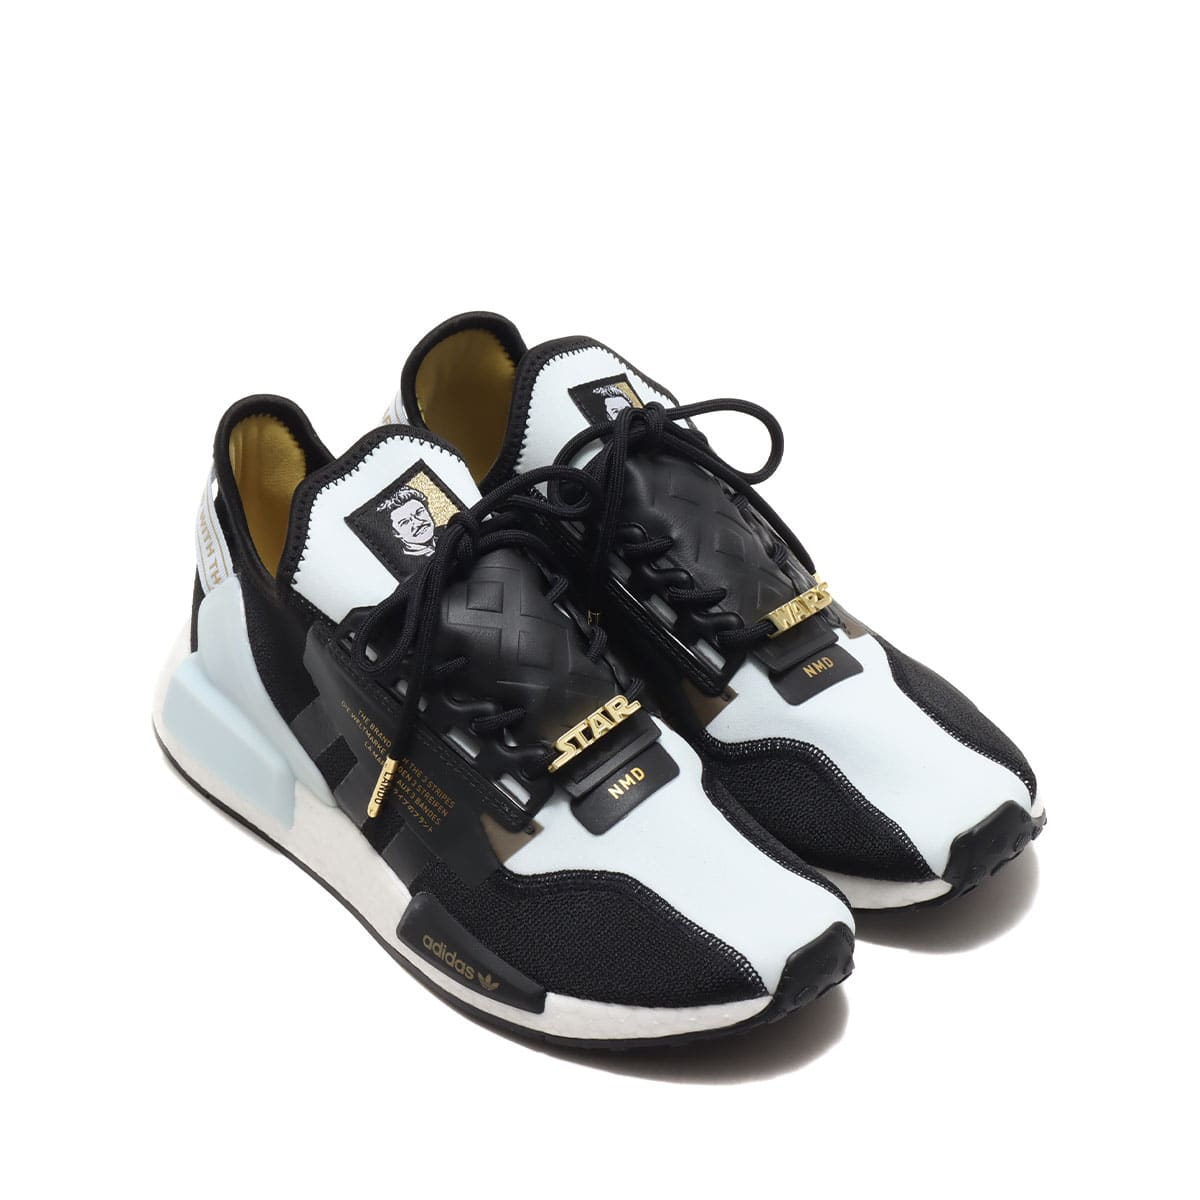 adidas NMD R1.V2 STAR WARS Lando Calrissian SKY TINT/CORE BLACK/GOLD METARIC 20SS-S_photo_large